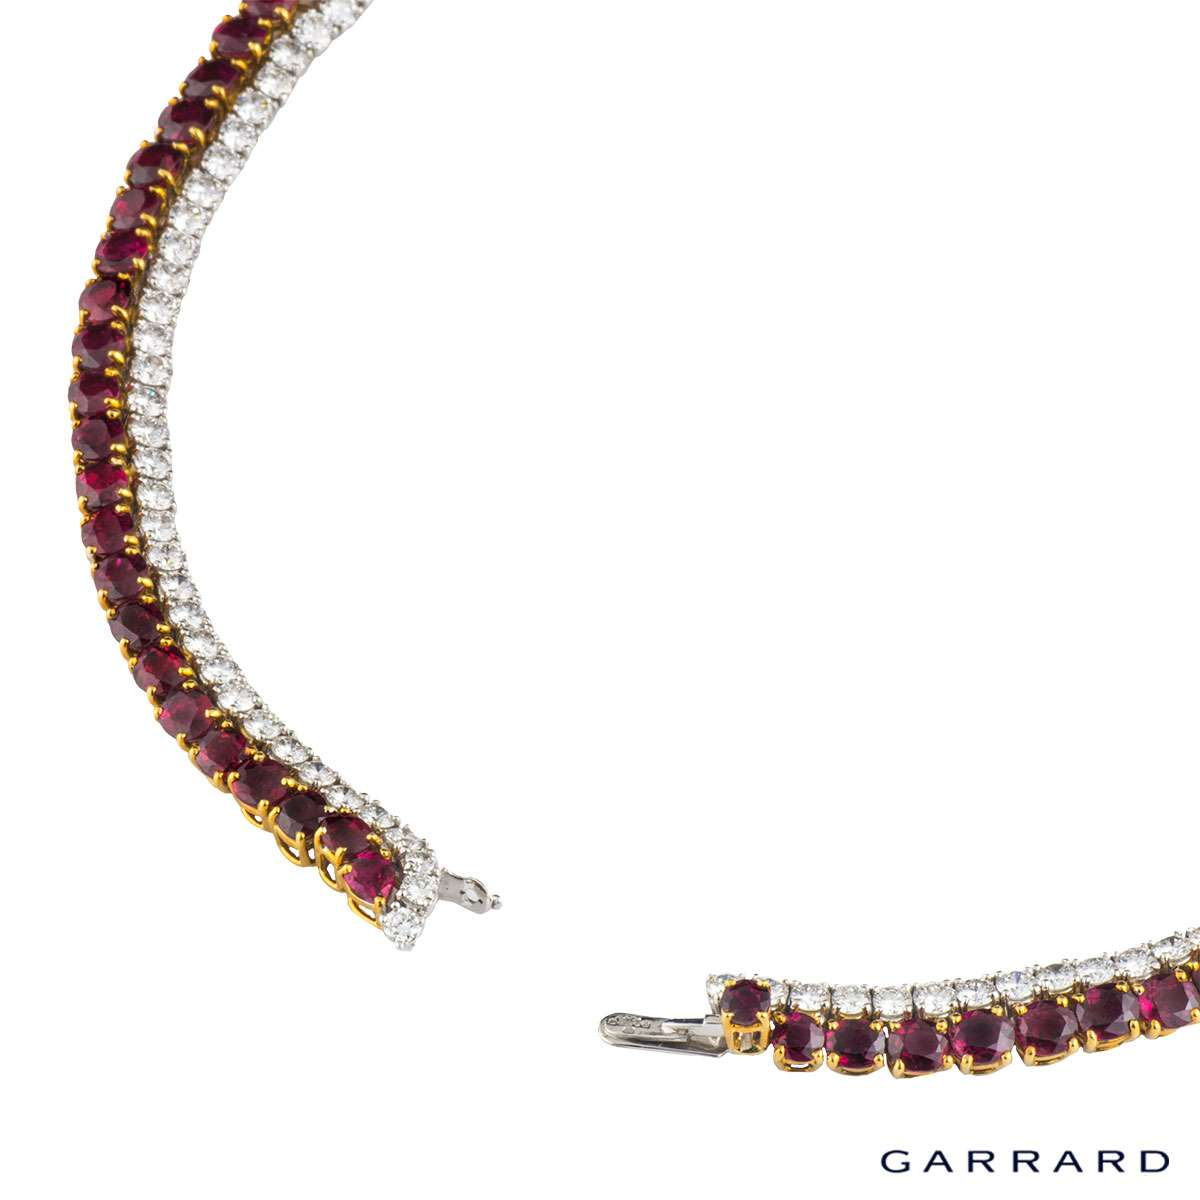 Garrard 18k Yellow Gold & Platinum Burmese Ruby & Diamond Necklace